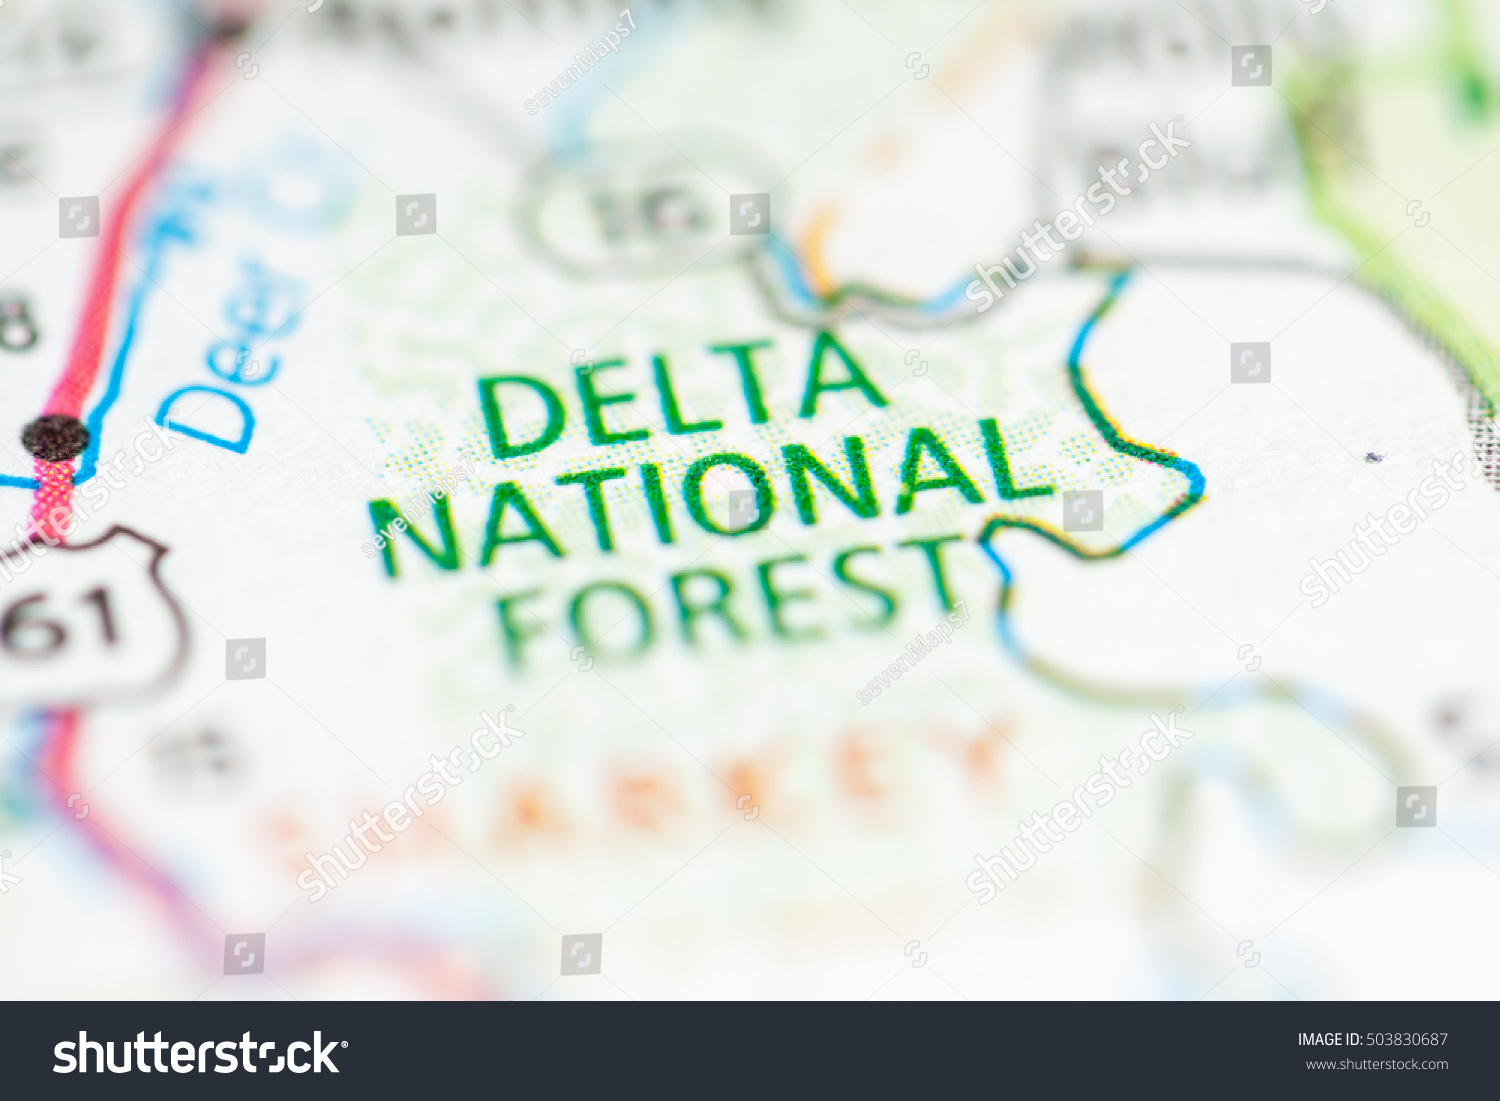 Delta National Forest Mississippi Usa Stock Photo (Edit Now ... on natchez trace parkway map, central time zone map, rio grande colorado forest service map, delta national wildlife refuge map, alabama cheaha state park trail map, delta utah map, delta s in the us, delta fishing map, sacramento delta map, delta river map, delta water map, delta state map, mississippi map,